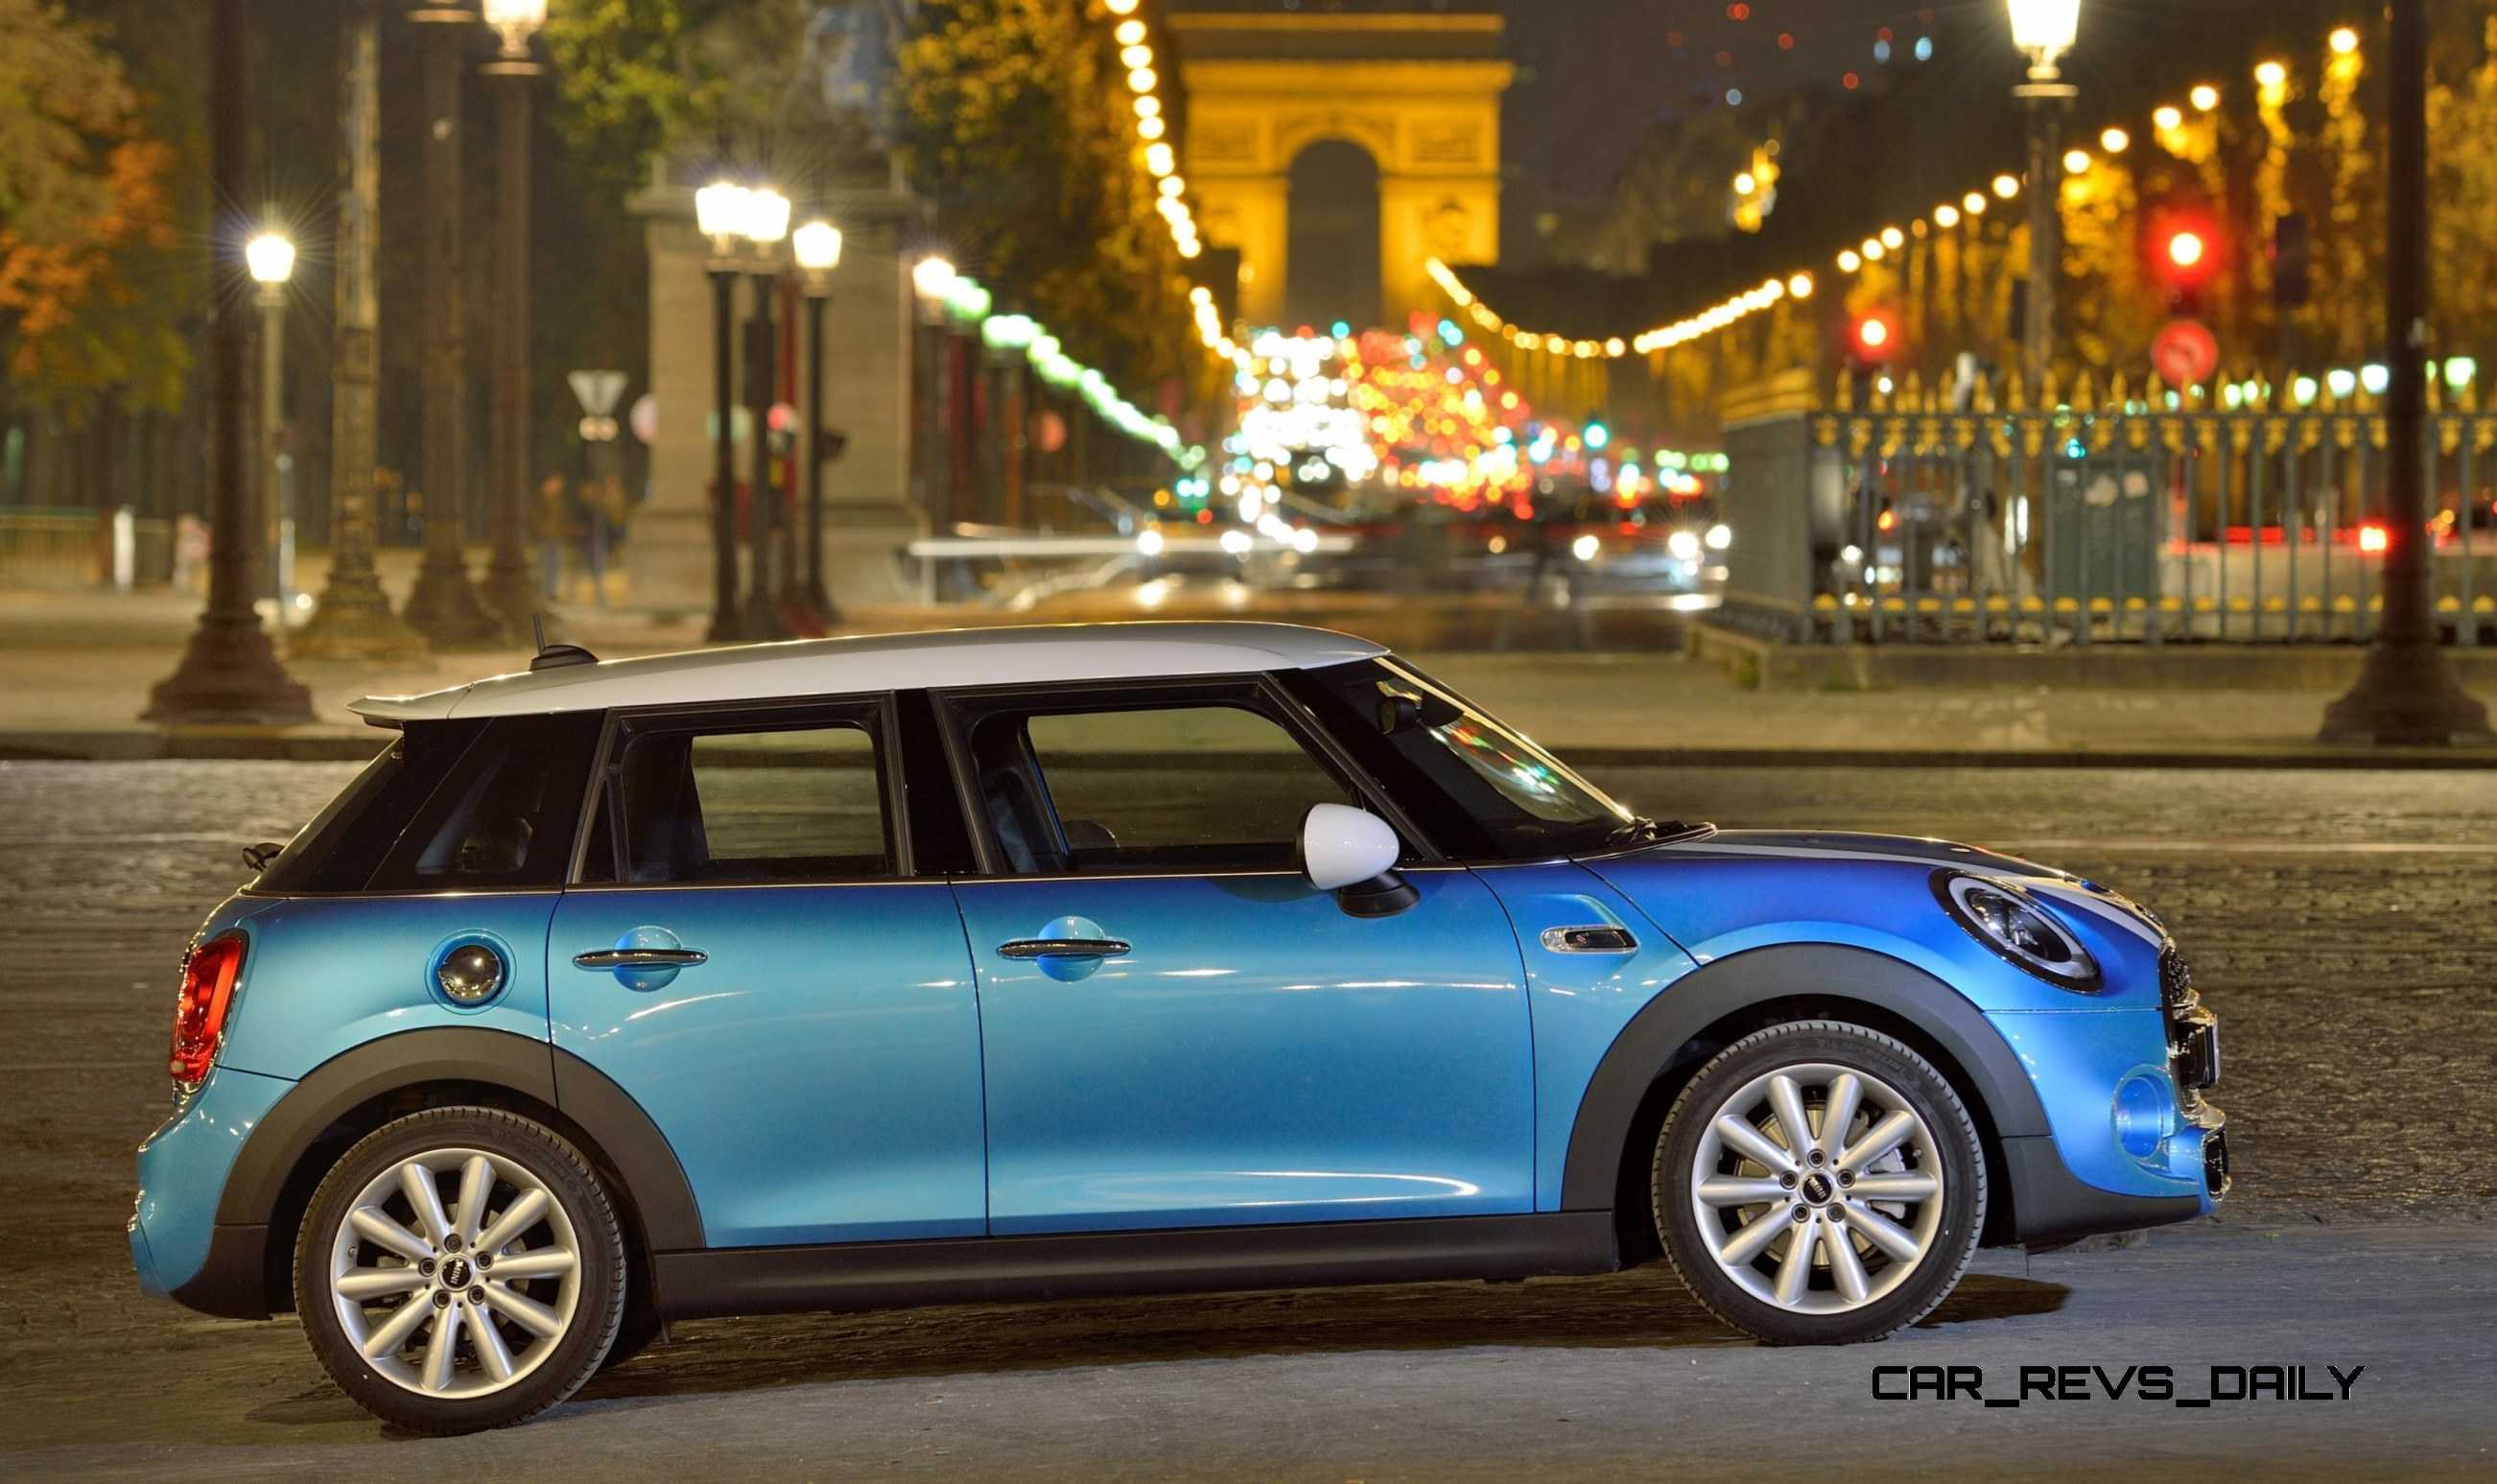 2015 mini cooper 5 door in postcard worthy trip around the city of light. Black Bedroom Furniture Sets. Home Design Ideas